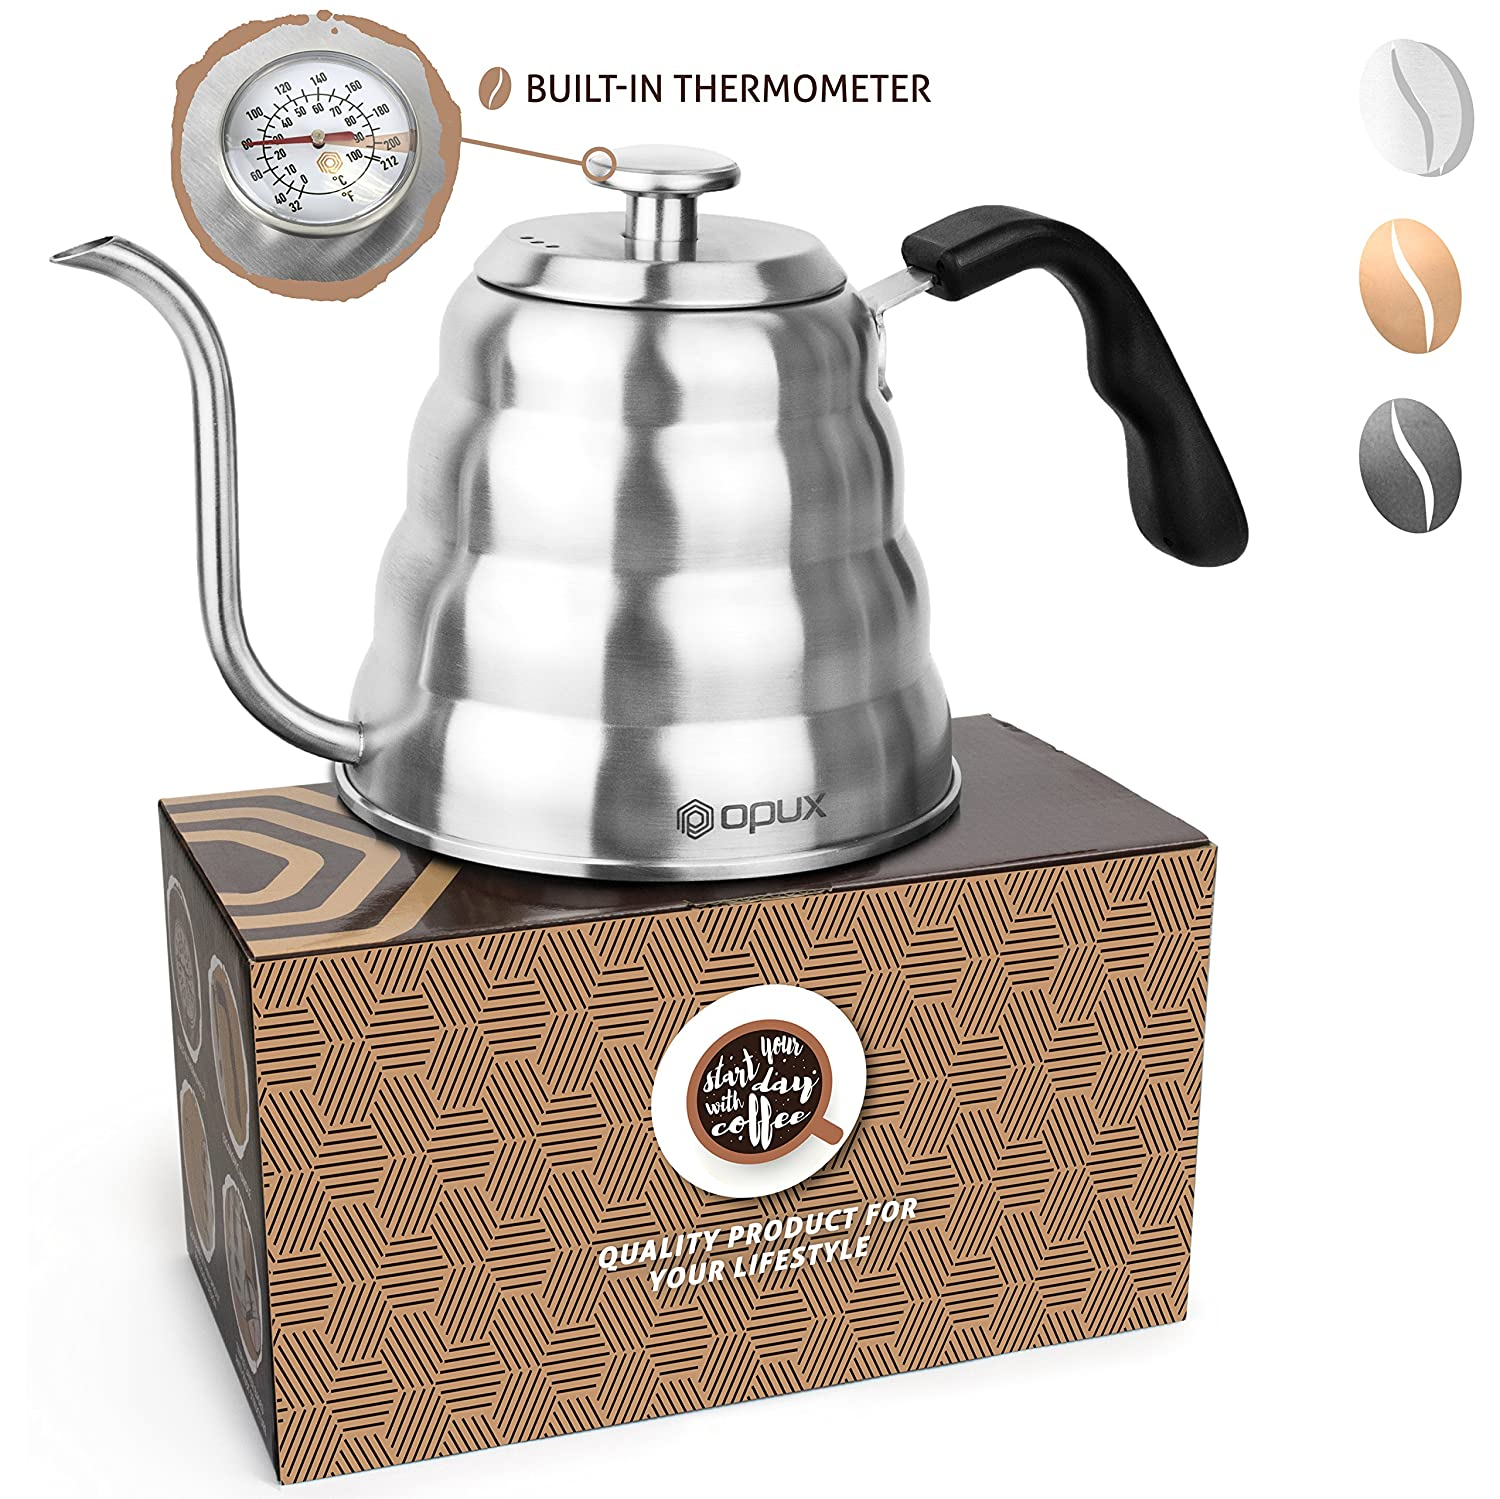 OPUX Gooseneck Pour Over Coffee Kettle with Thermometer | Premium Grade Stainless Steel Drip Kettle for Home Coffee Brewing, Tea, Barista | 40 fl oz (Stainless Steel, Solid Top)